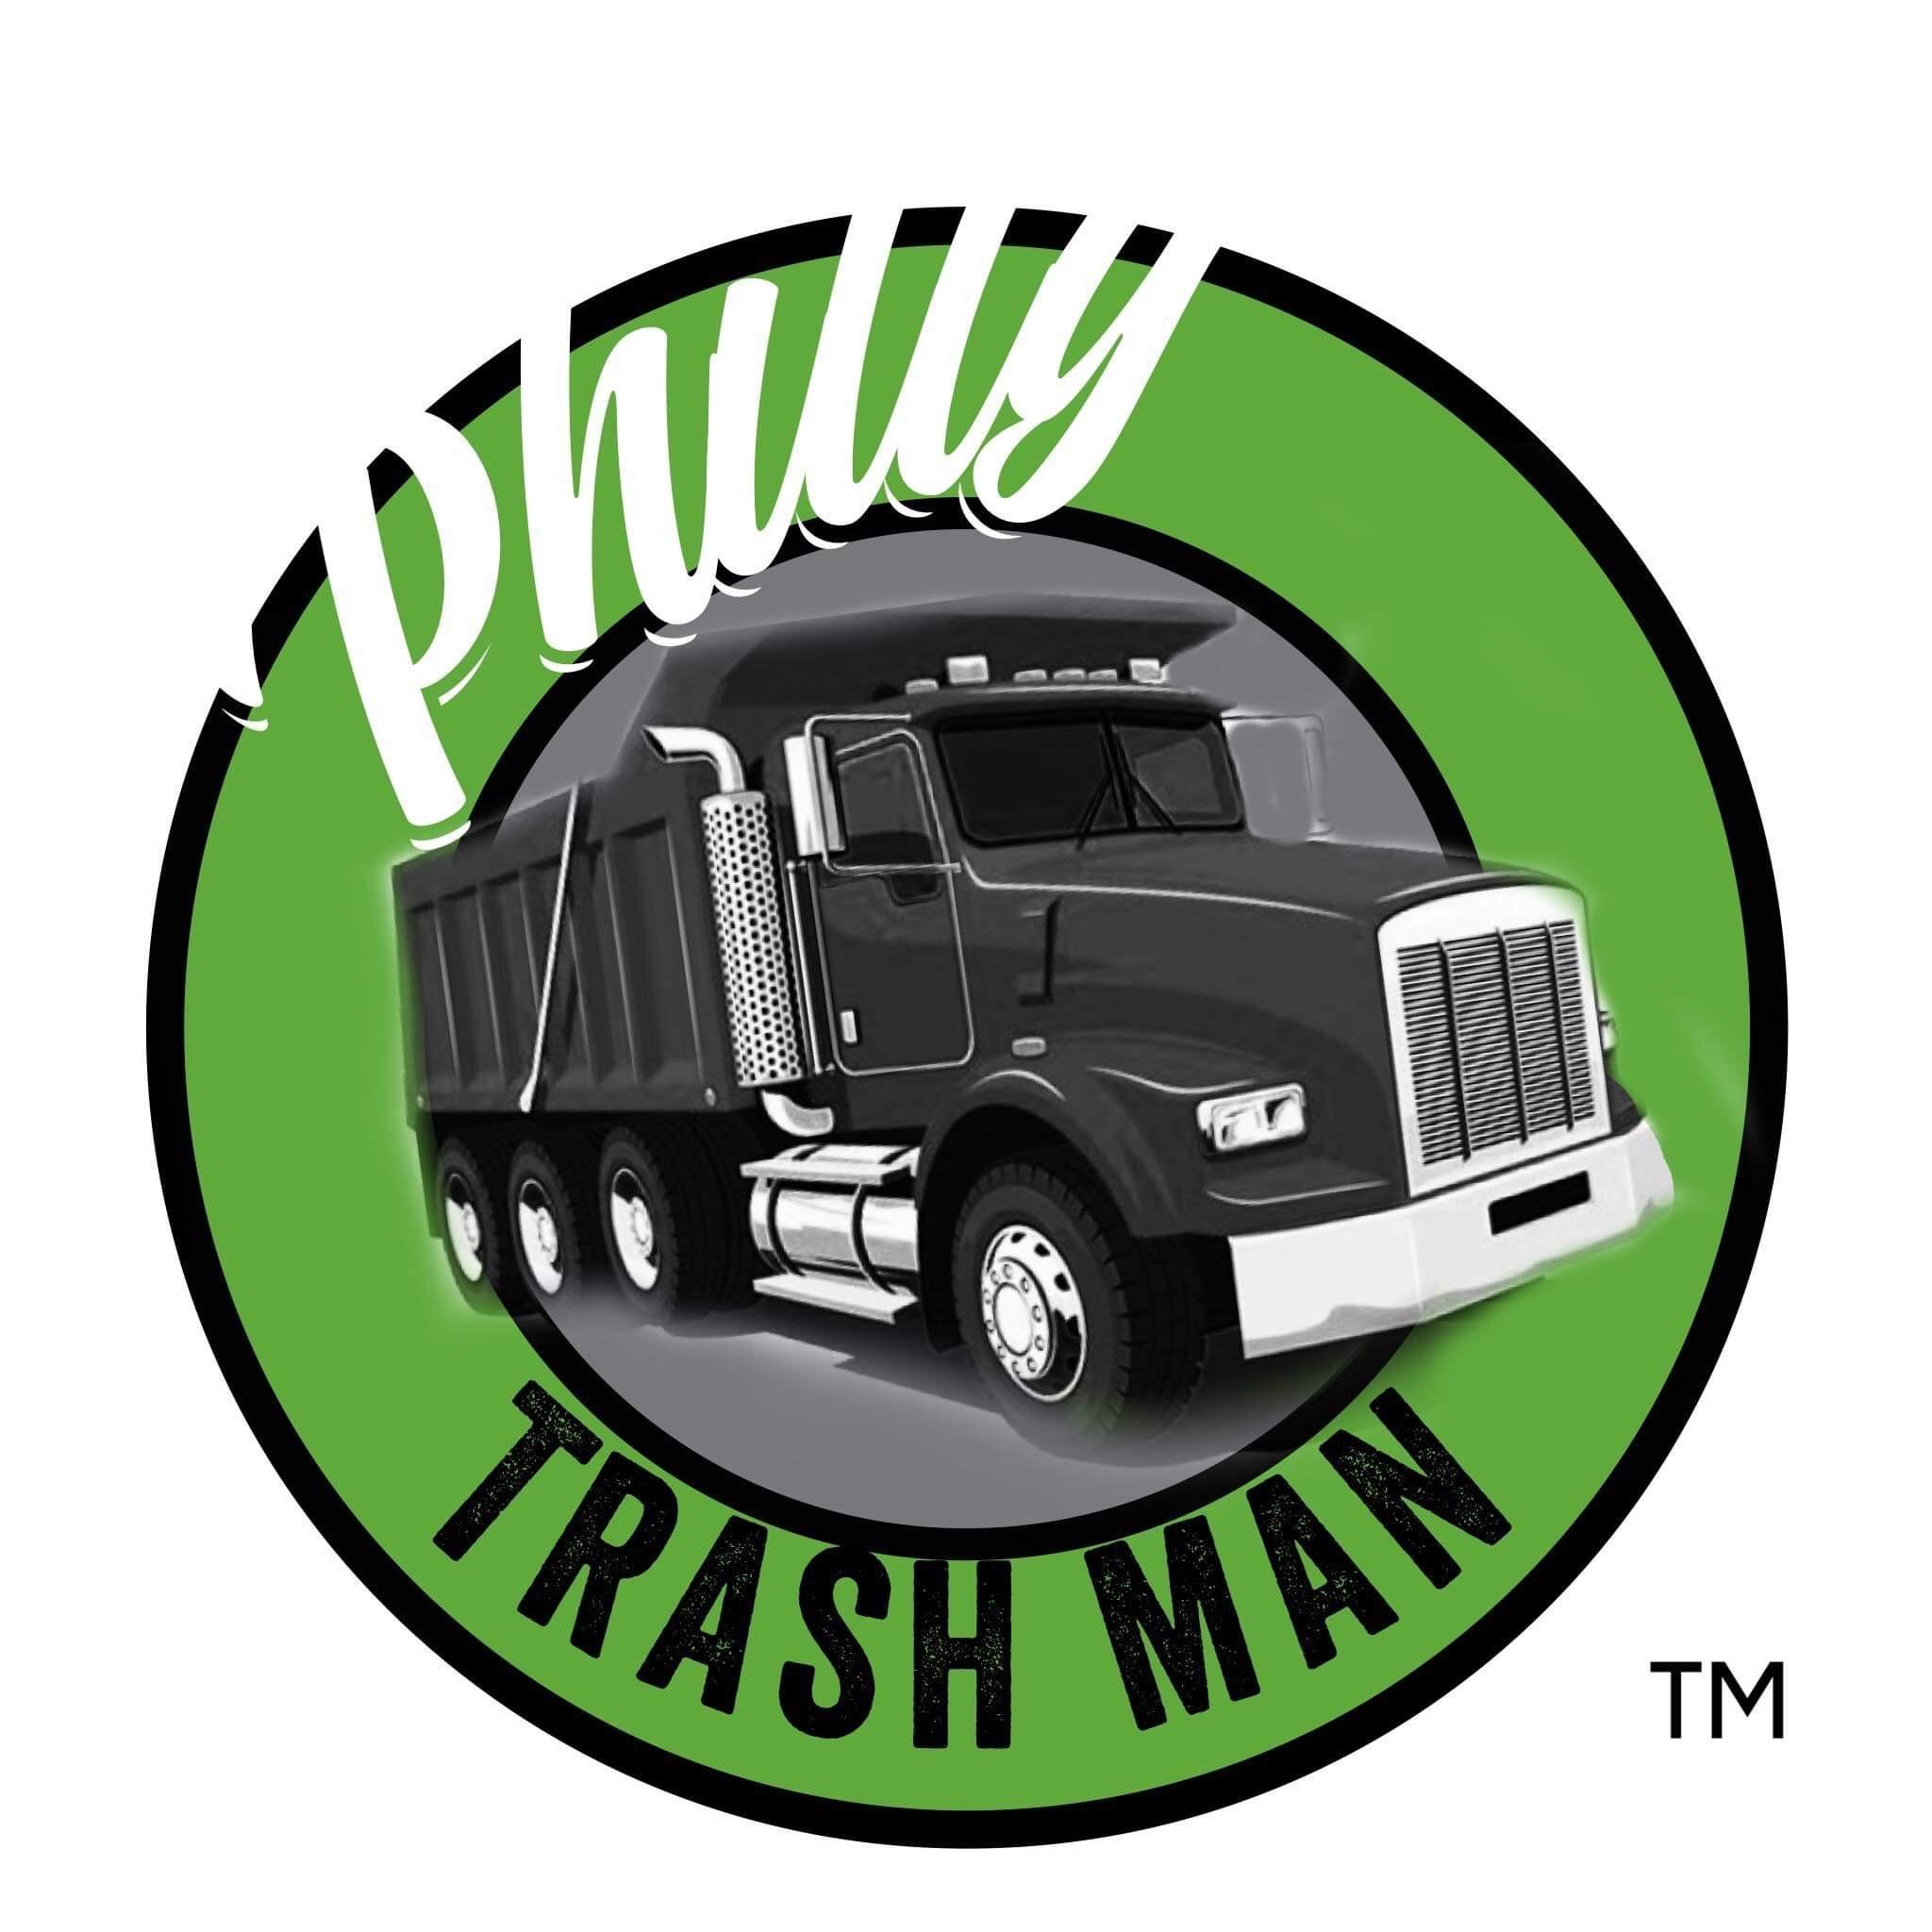 Philly Trash Man LLC